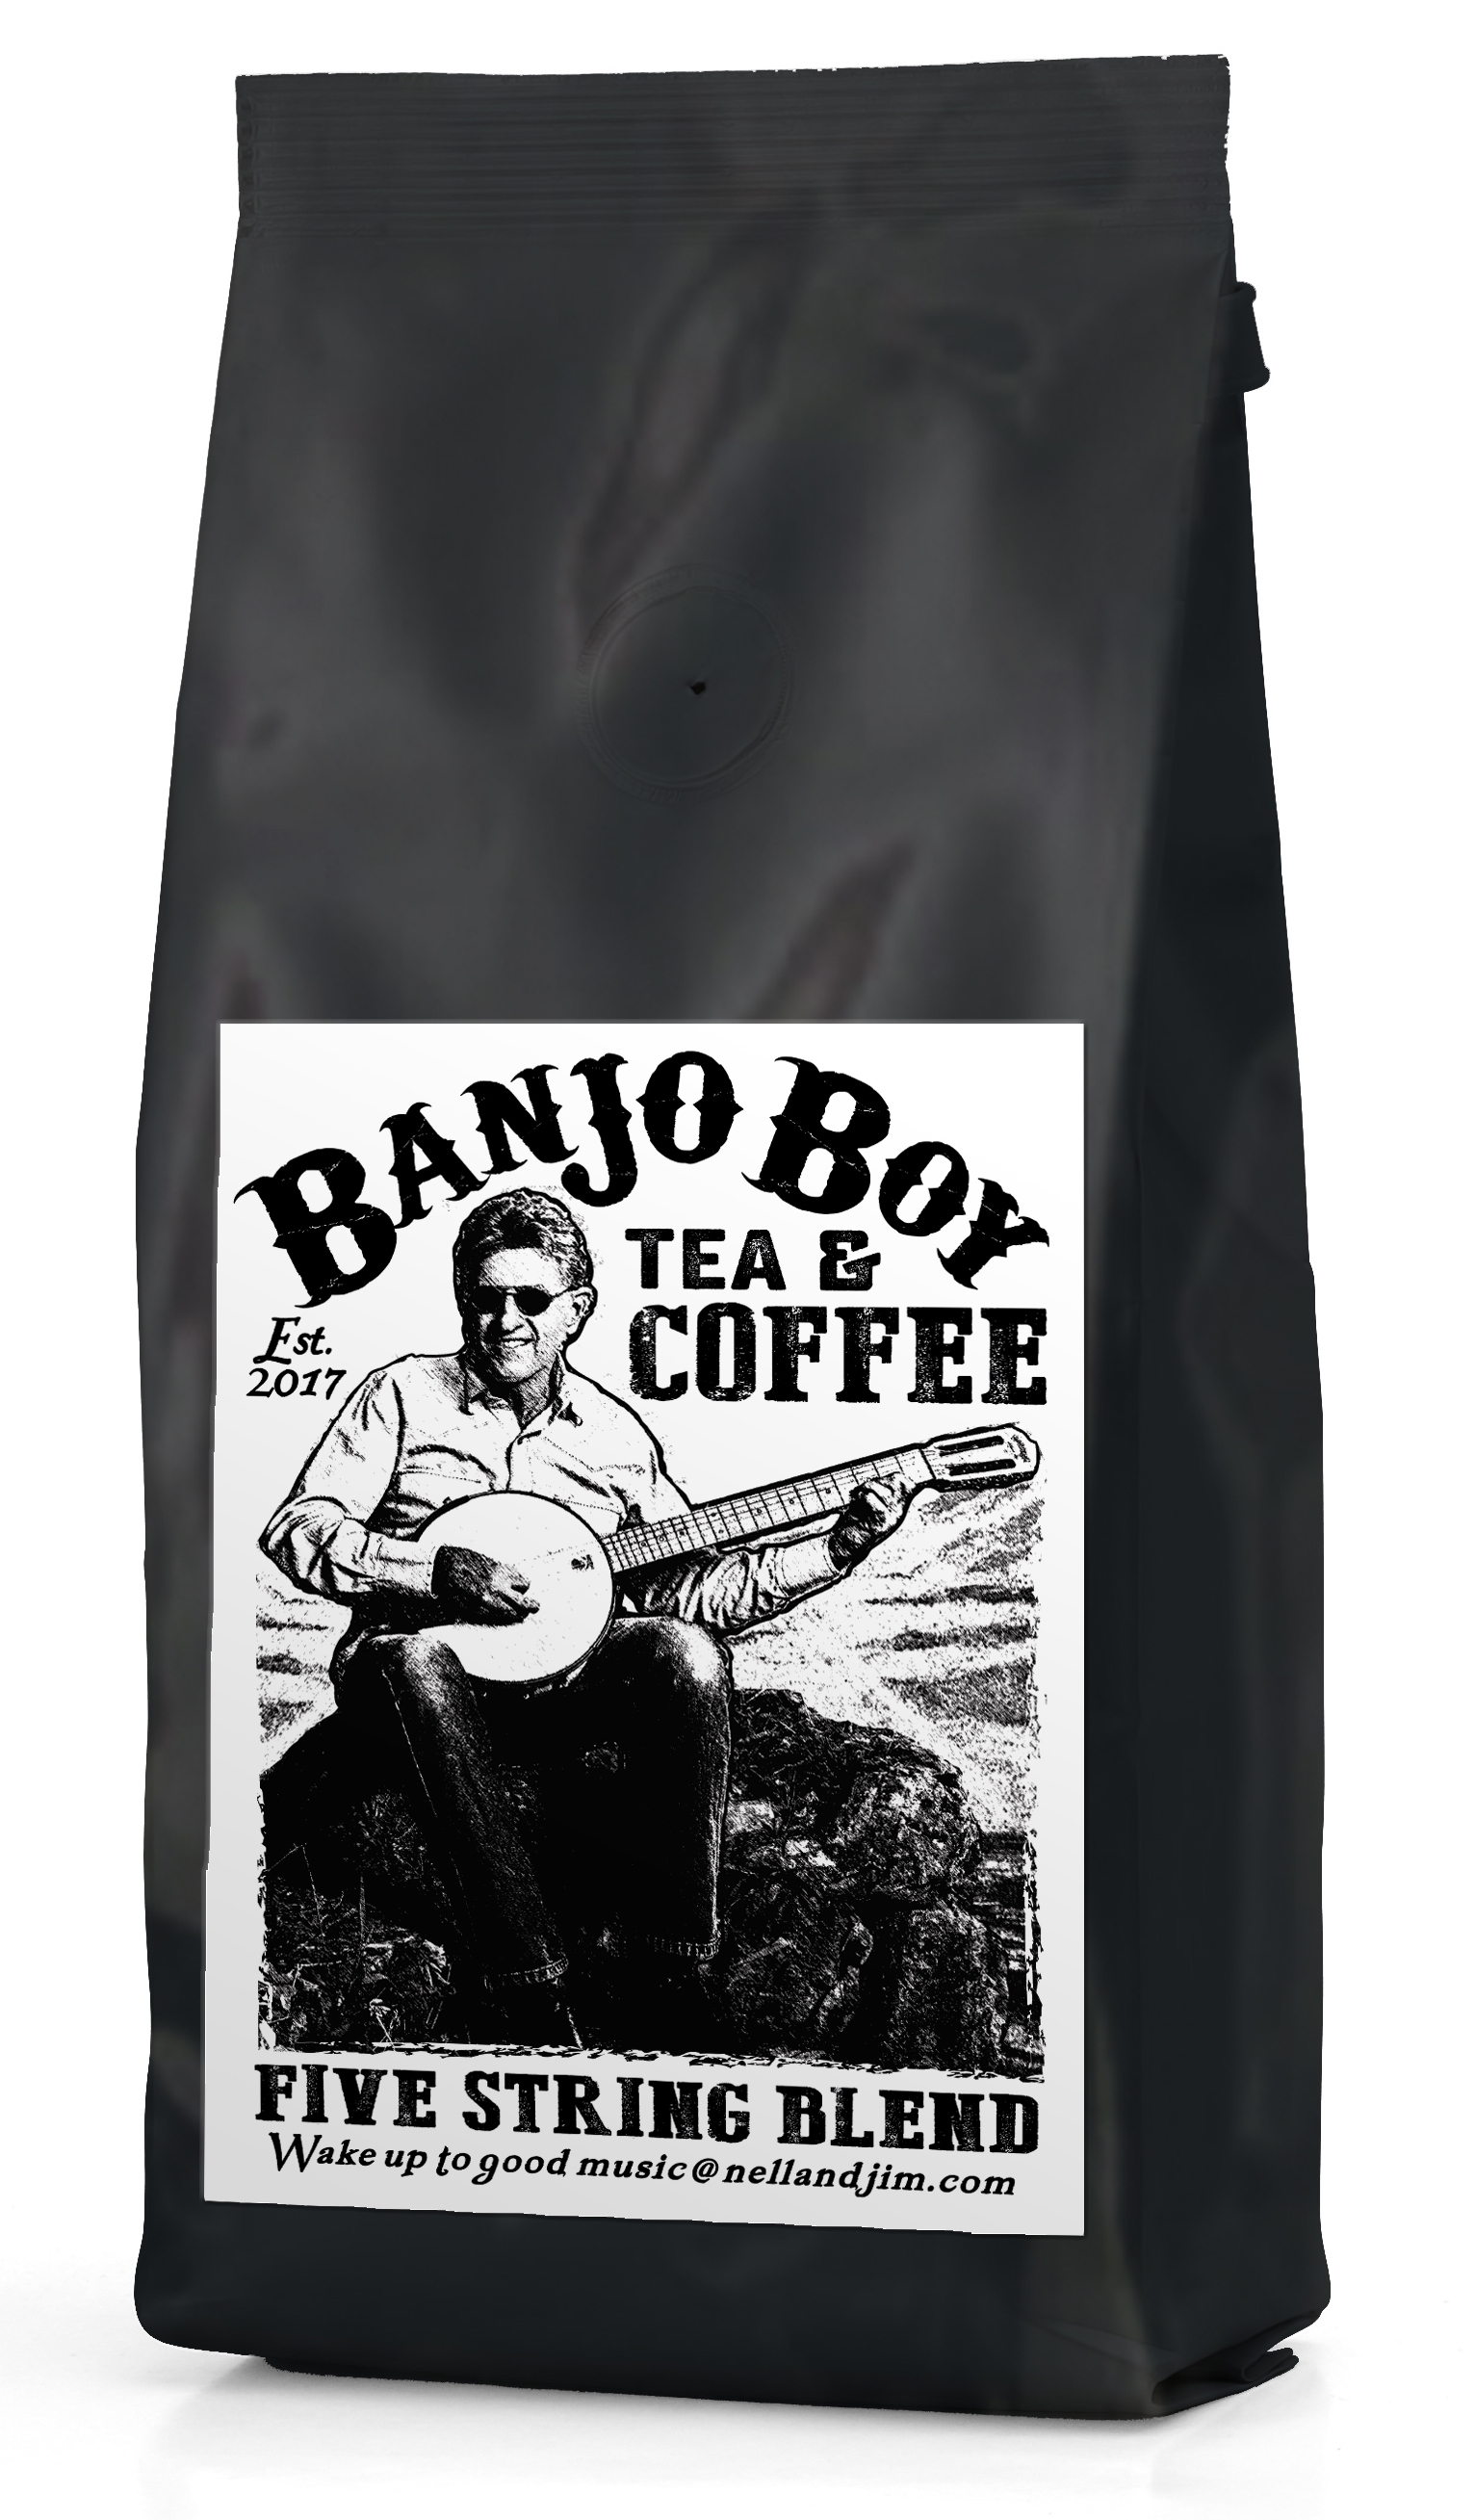 Five String Blend - A medium roasted coffee. In the tonal spectrum this blend has the pickup often desired to get you up to tempo and rolling along, its rich blend of nutty, woody character, is a great way start the day—wake up the taste buds and the fingers for rolling bluegrass.